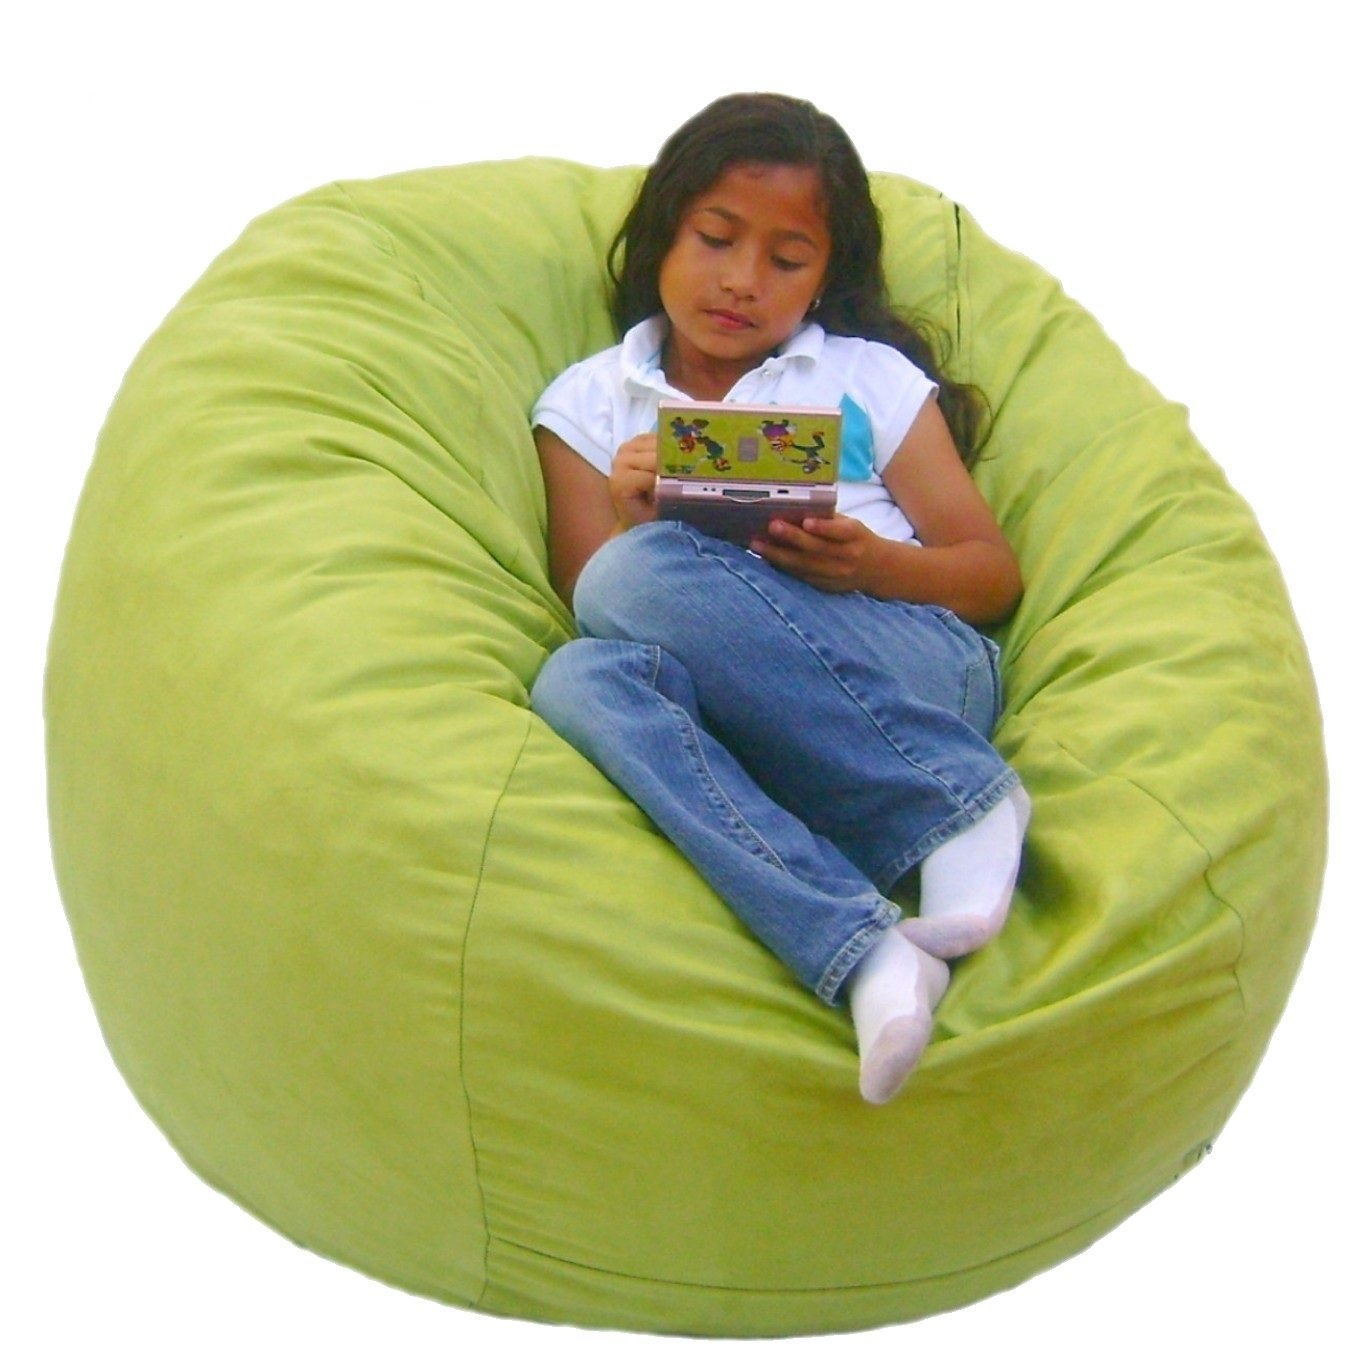 How To Choose A Bean Bag Chair